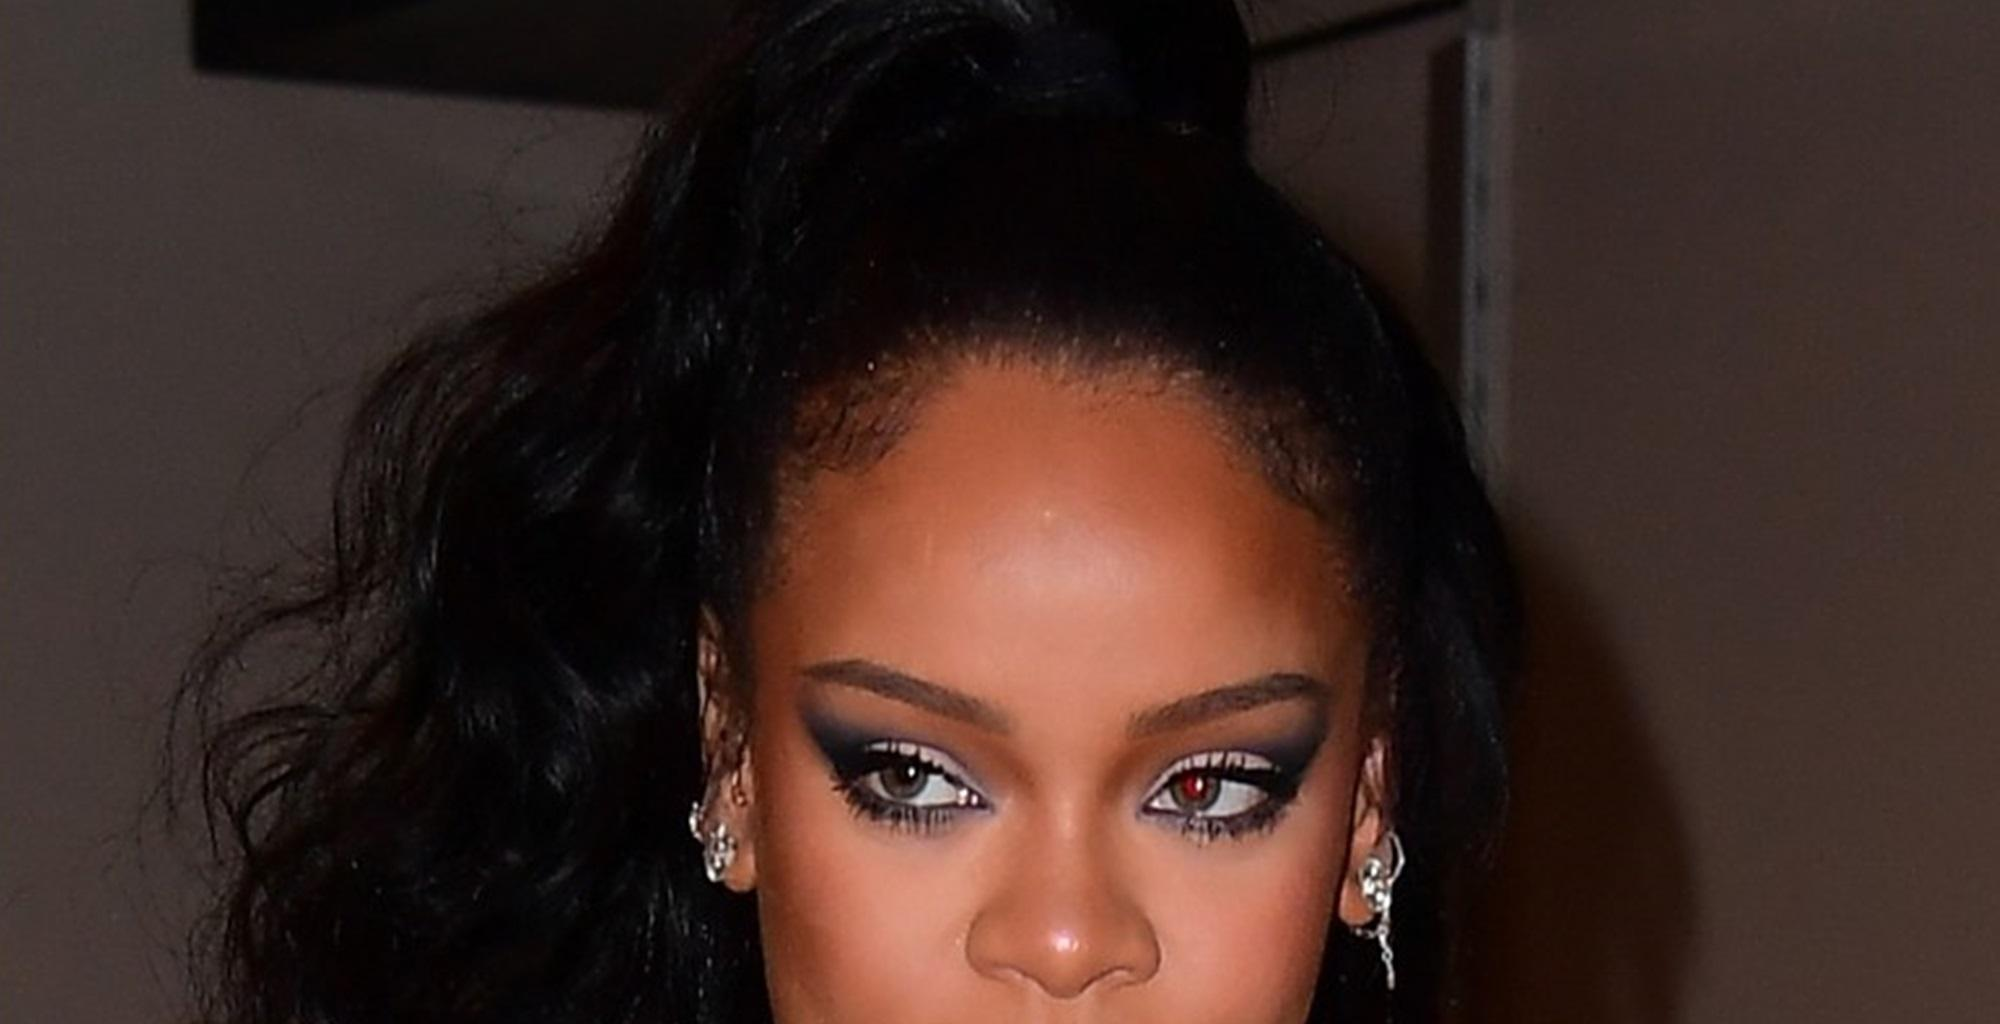 Chris Brown Responds To Rihanna Showing Him Massive Love With This Video -- Are The Exes Flirting? Where Is Hassan Jameel?